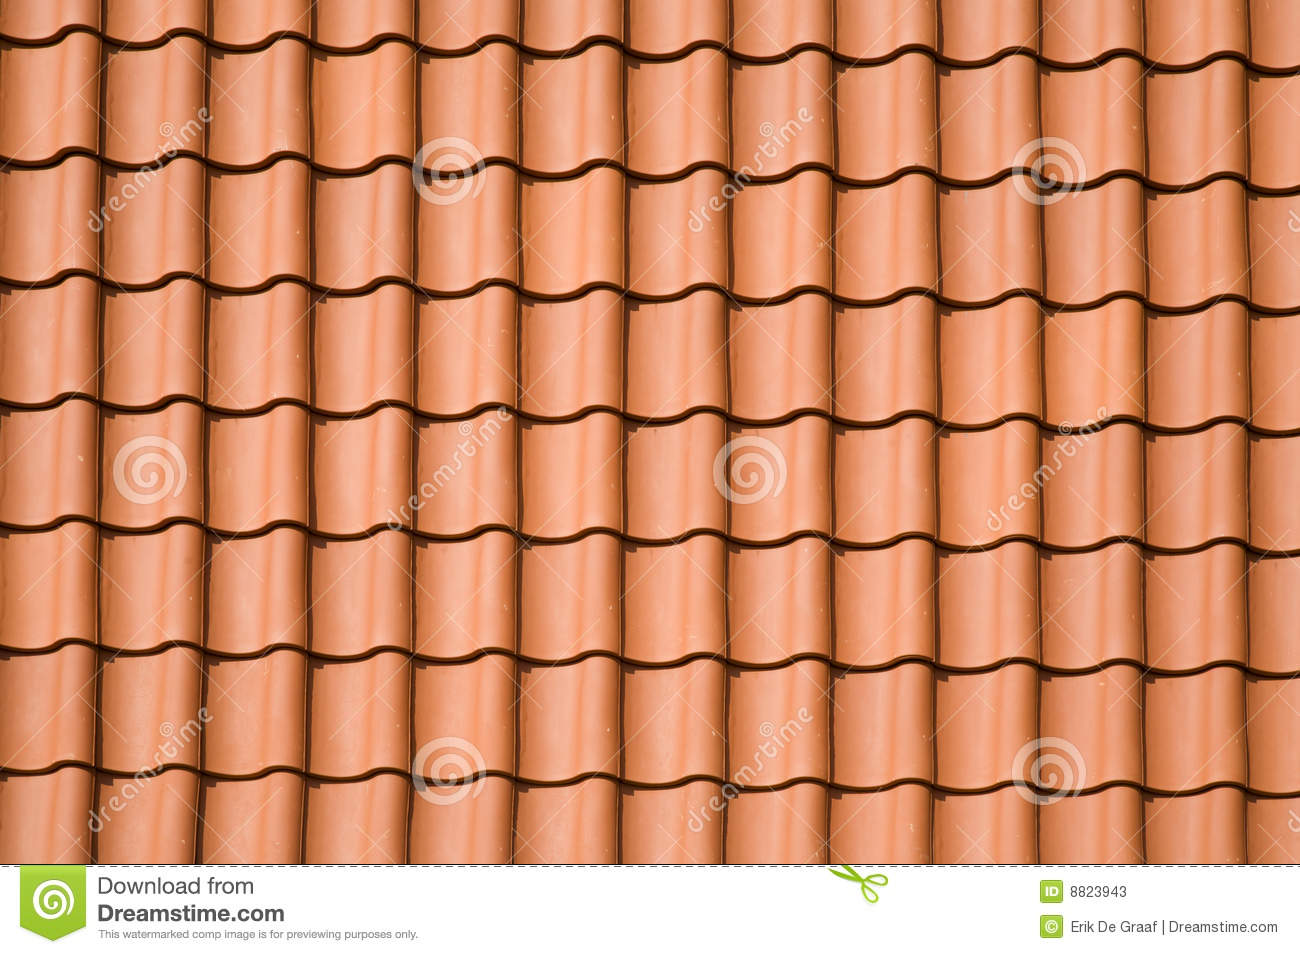 Clay Roof Tile Roof Pattern Stock Photos - Image: 8823943